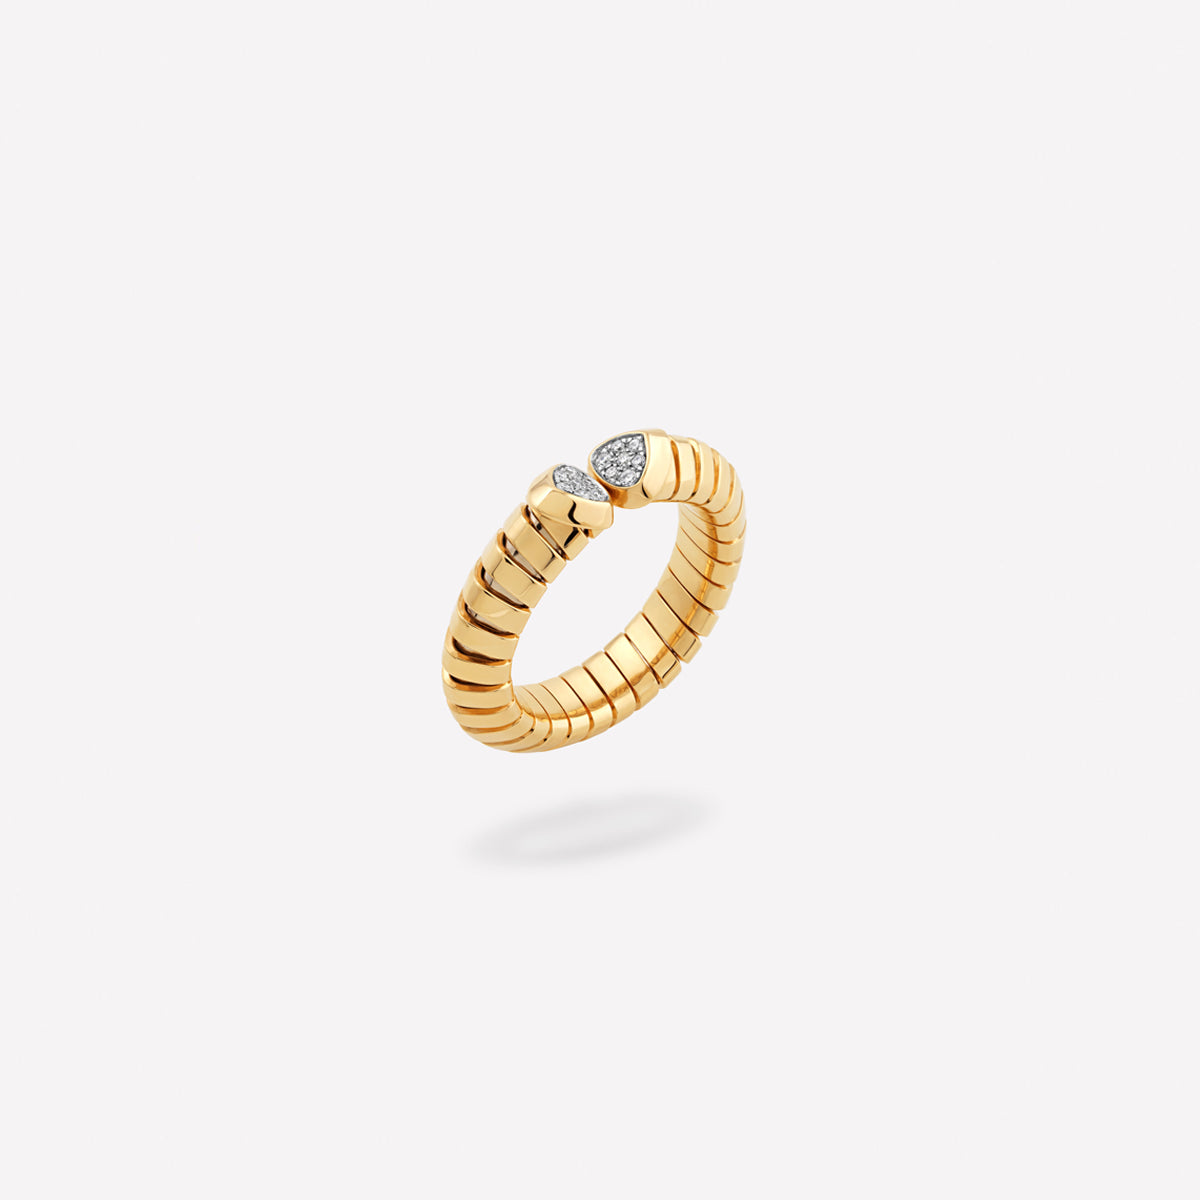 marinab.com, Trisolina Pavé Diamond Ring